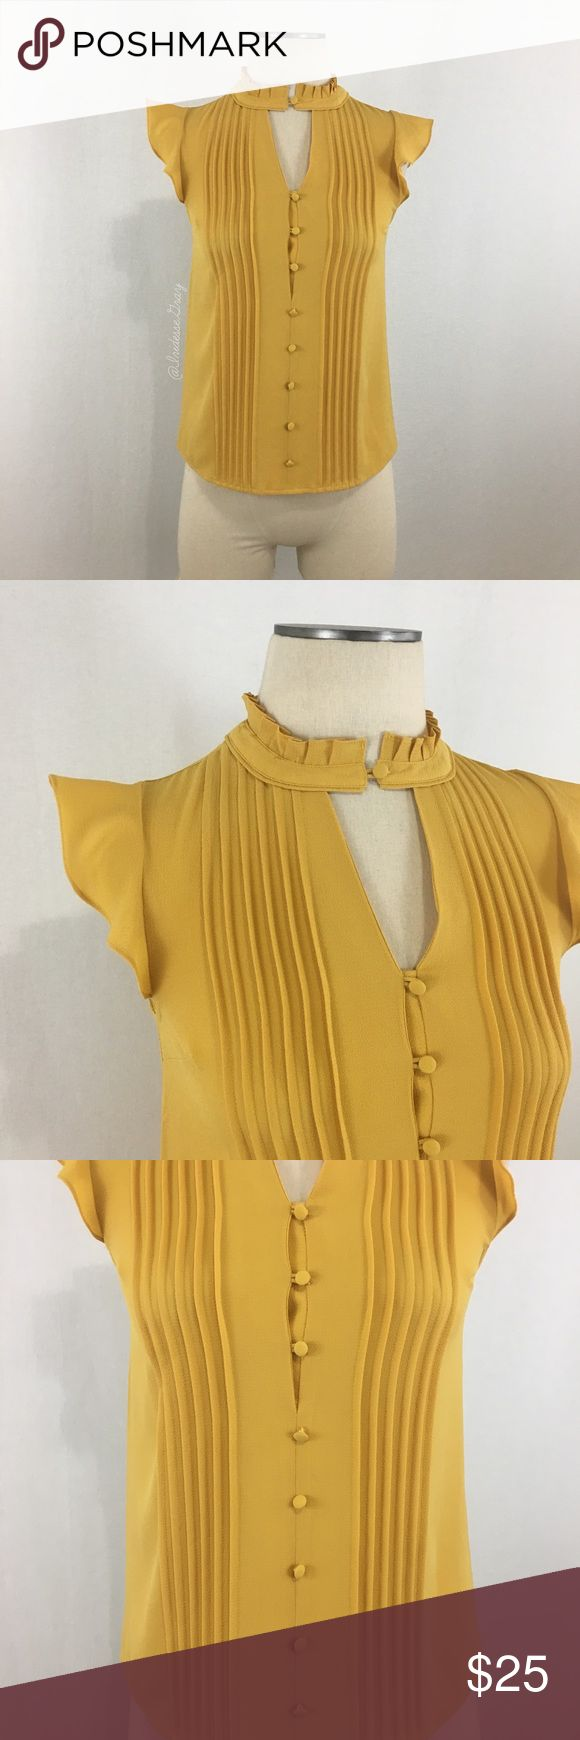 """ModCloth- Mustard Flutter Sleeve Pleat Top SZ XXS ModCloth- Mustard Flutter Sleeve Pleat Top SZ XXS. Made of 100% Polyester. Two sections of pleating down the front. Pleated collar with button closure at the neck- create a small v-cut out look at the chest. There are 8 buttons down the front (not including the neck)- the top 3 are functional, the bottom 5 are decorative. Buttons #4 & 8 are - little looser (see pic #3). Shoulder-bottom measures about 23"""" long. Armpit-armpit measures about…"""